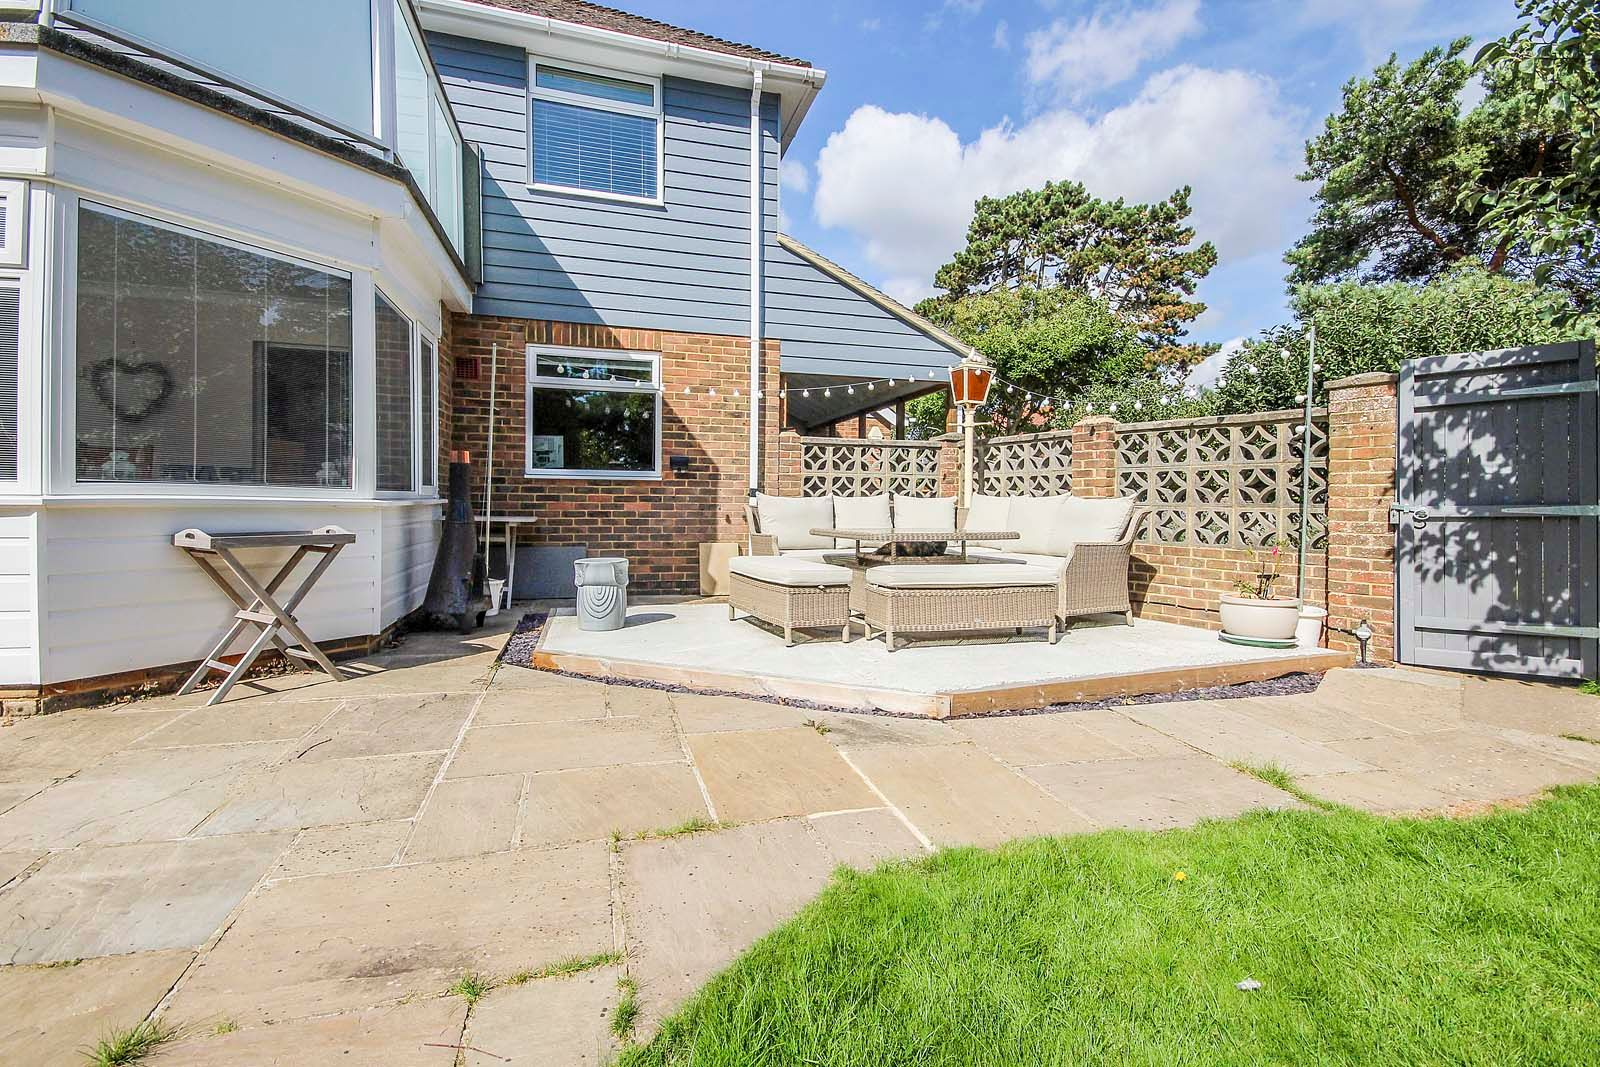 4 bed House for sale in Rustington - Seating area (Property Image 12)